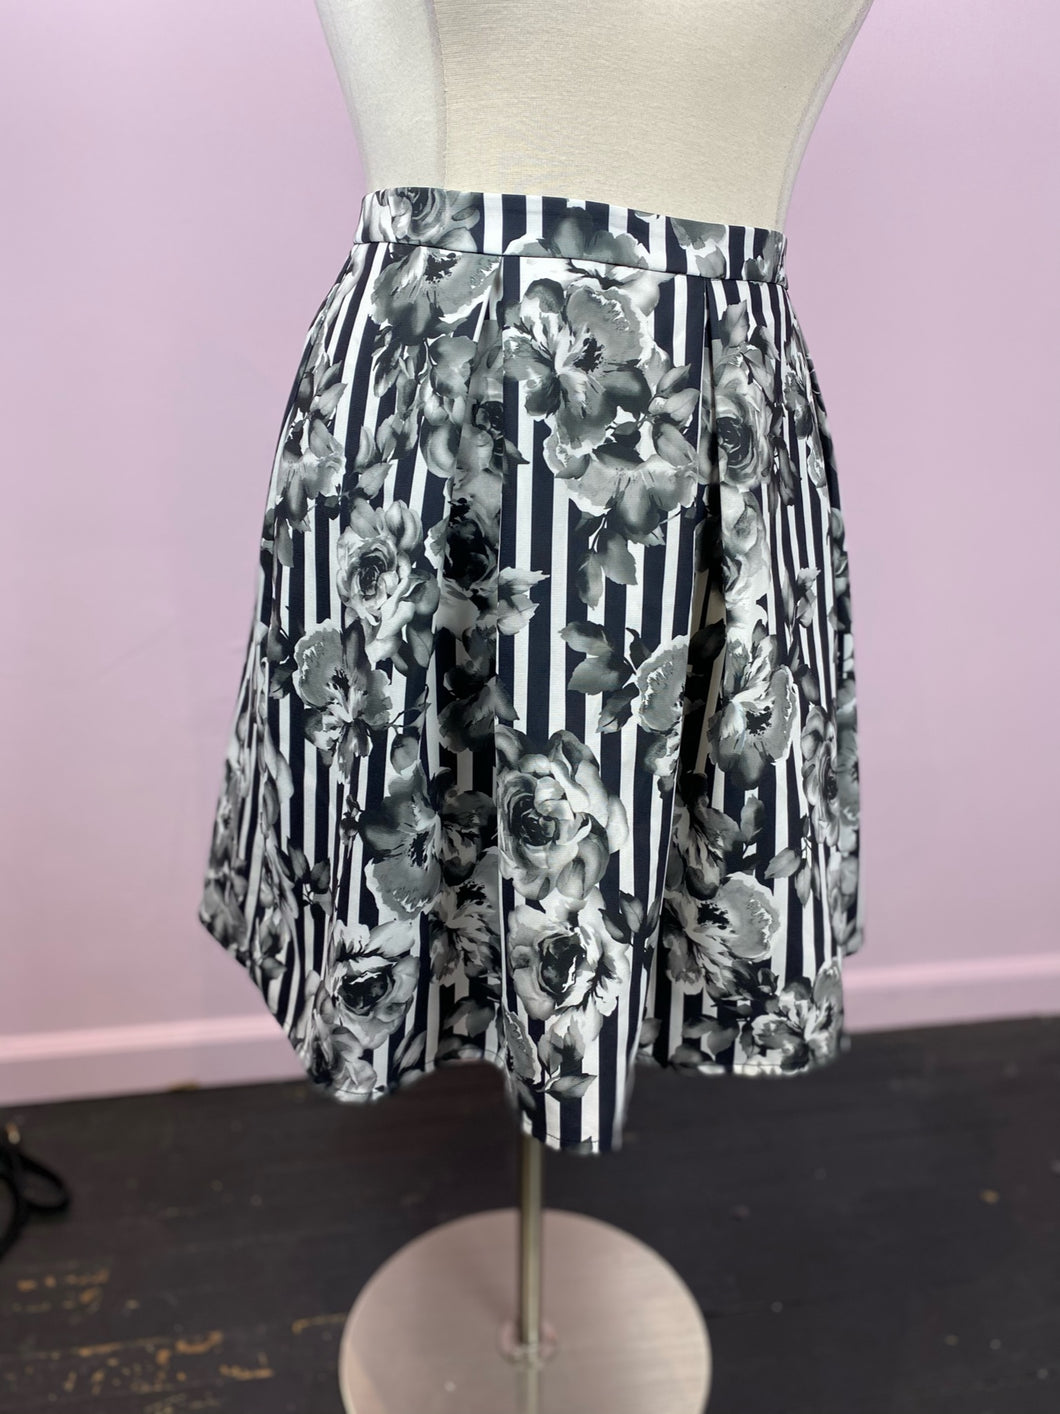 Black and White Stripes and Grayscale Floral Skirt by City Chic, Size 22/24